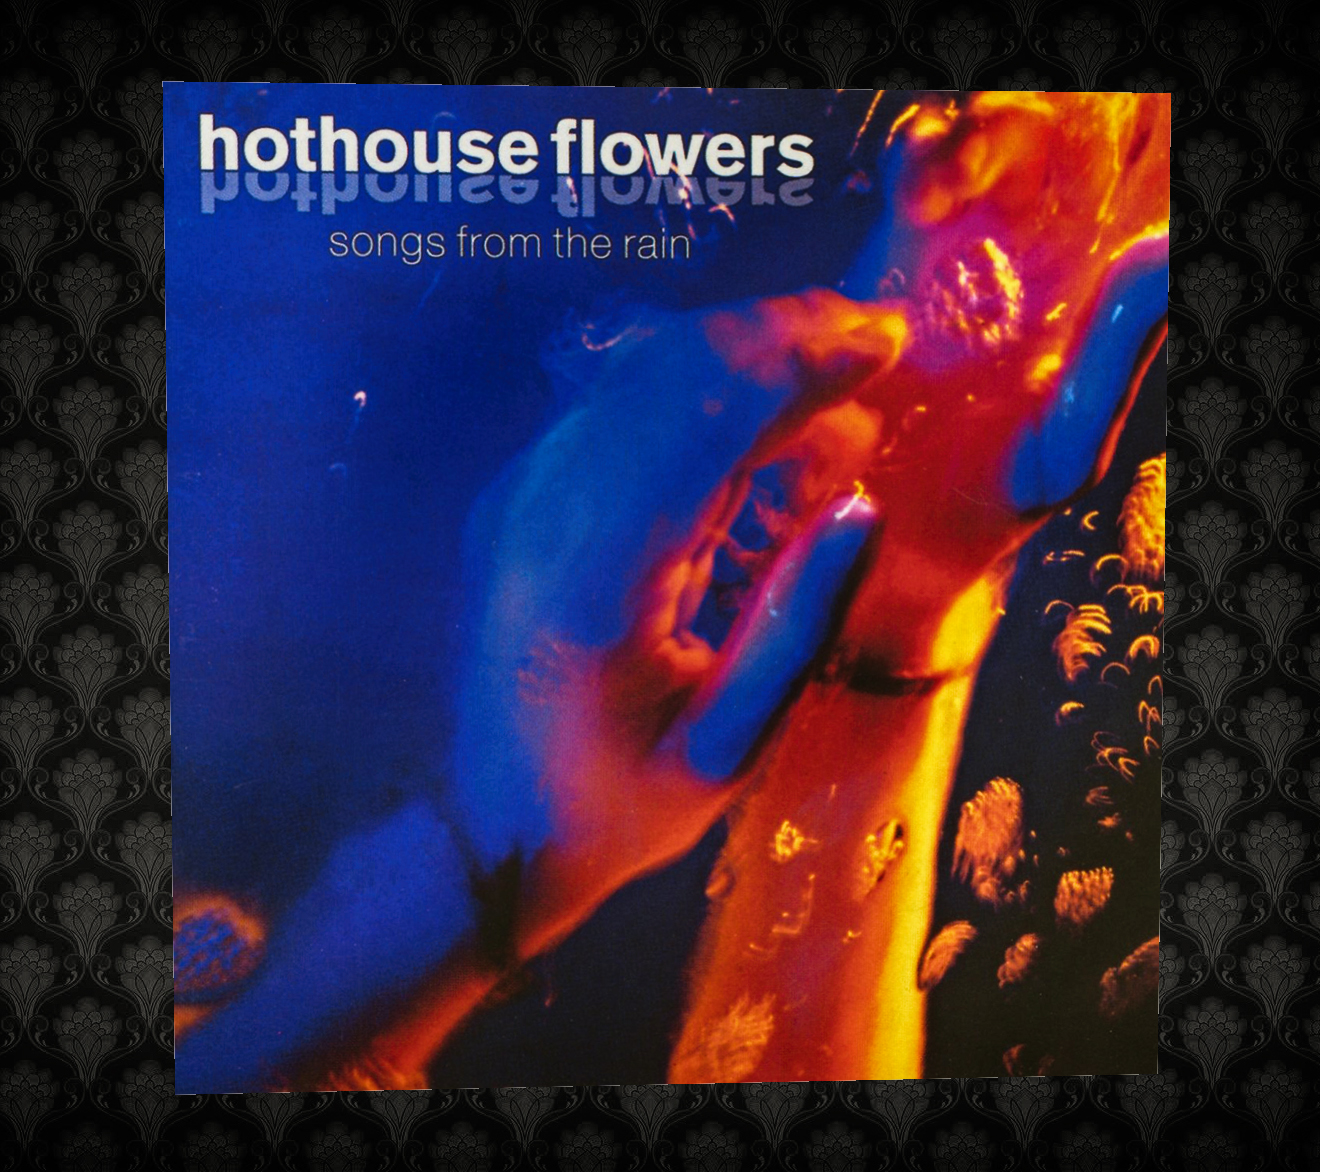 Sound Vision Thing Hothouse Flowers Songs From The Rain